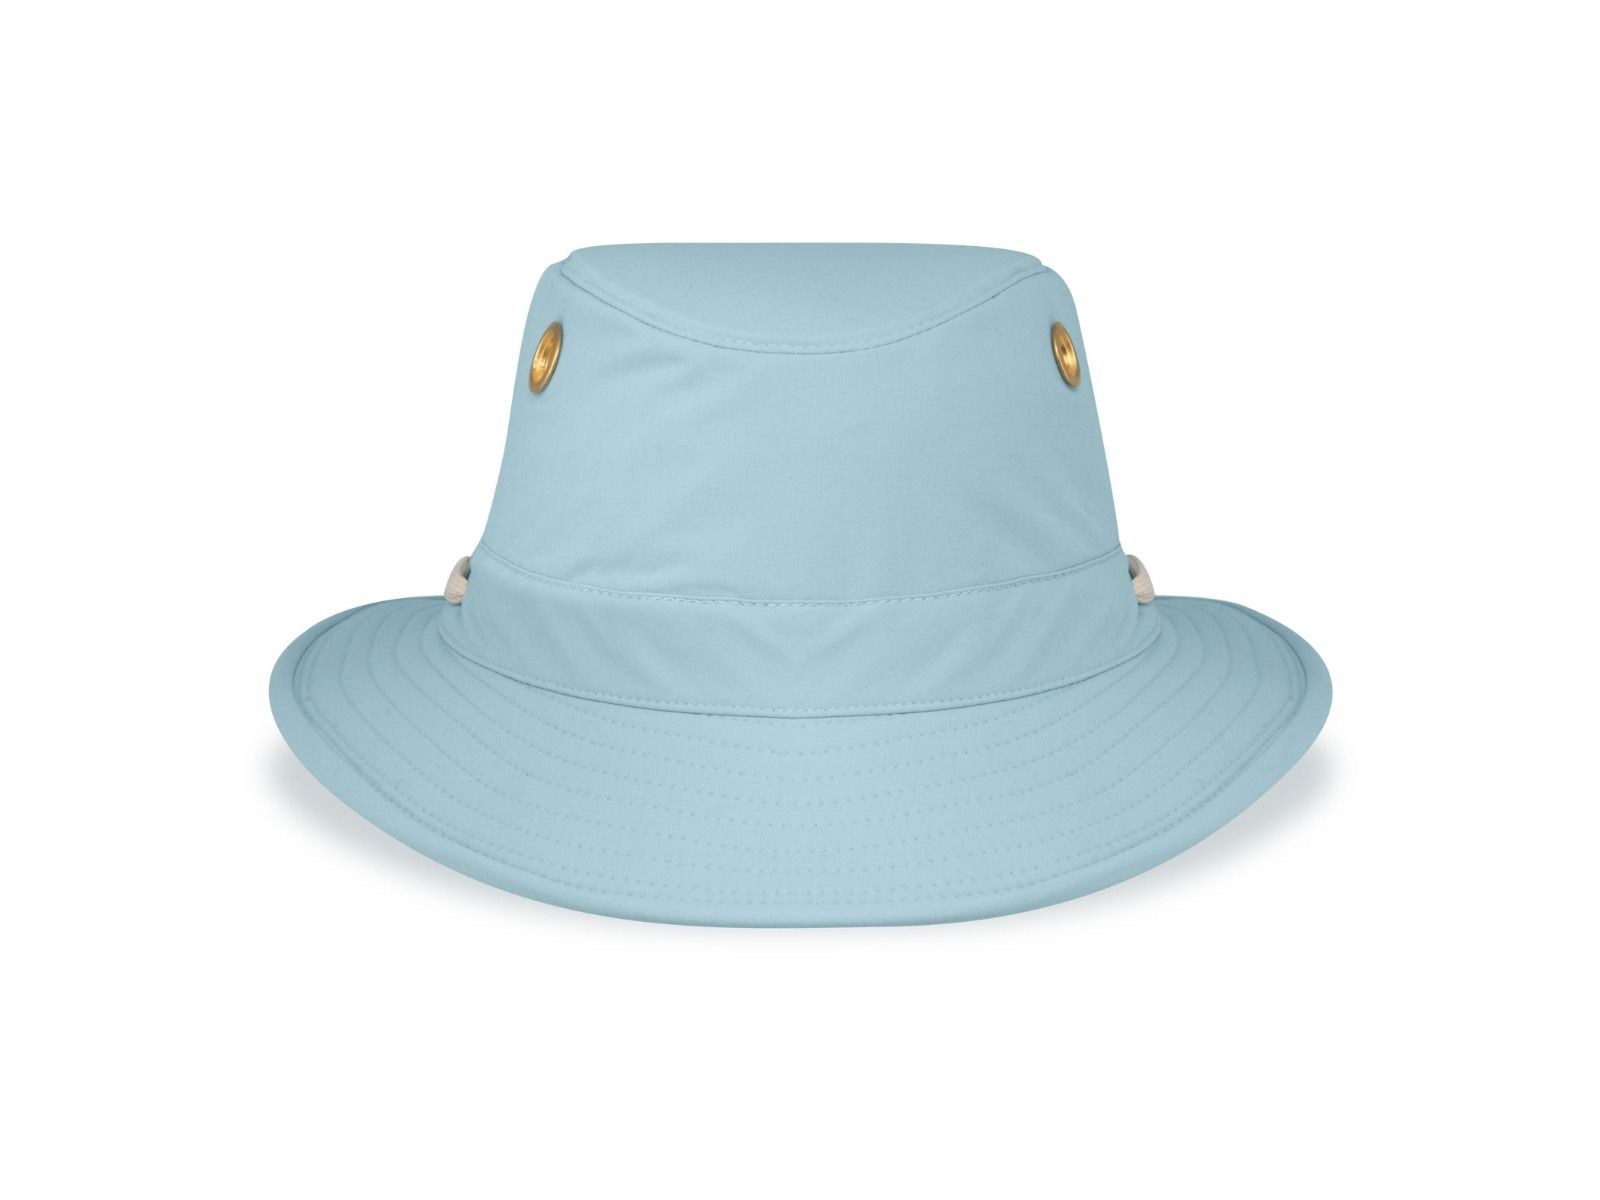 LT5B Light Weight Nylon Hat now available in Ice Blue!